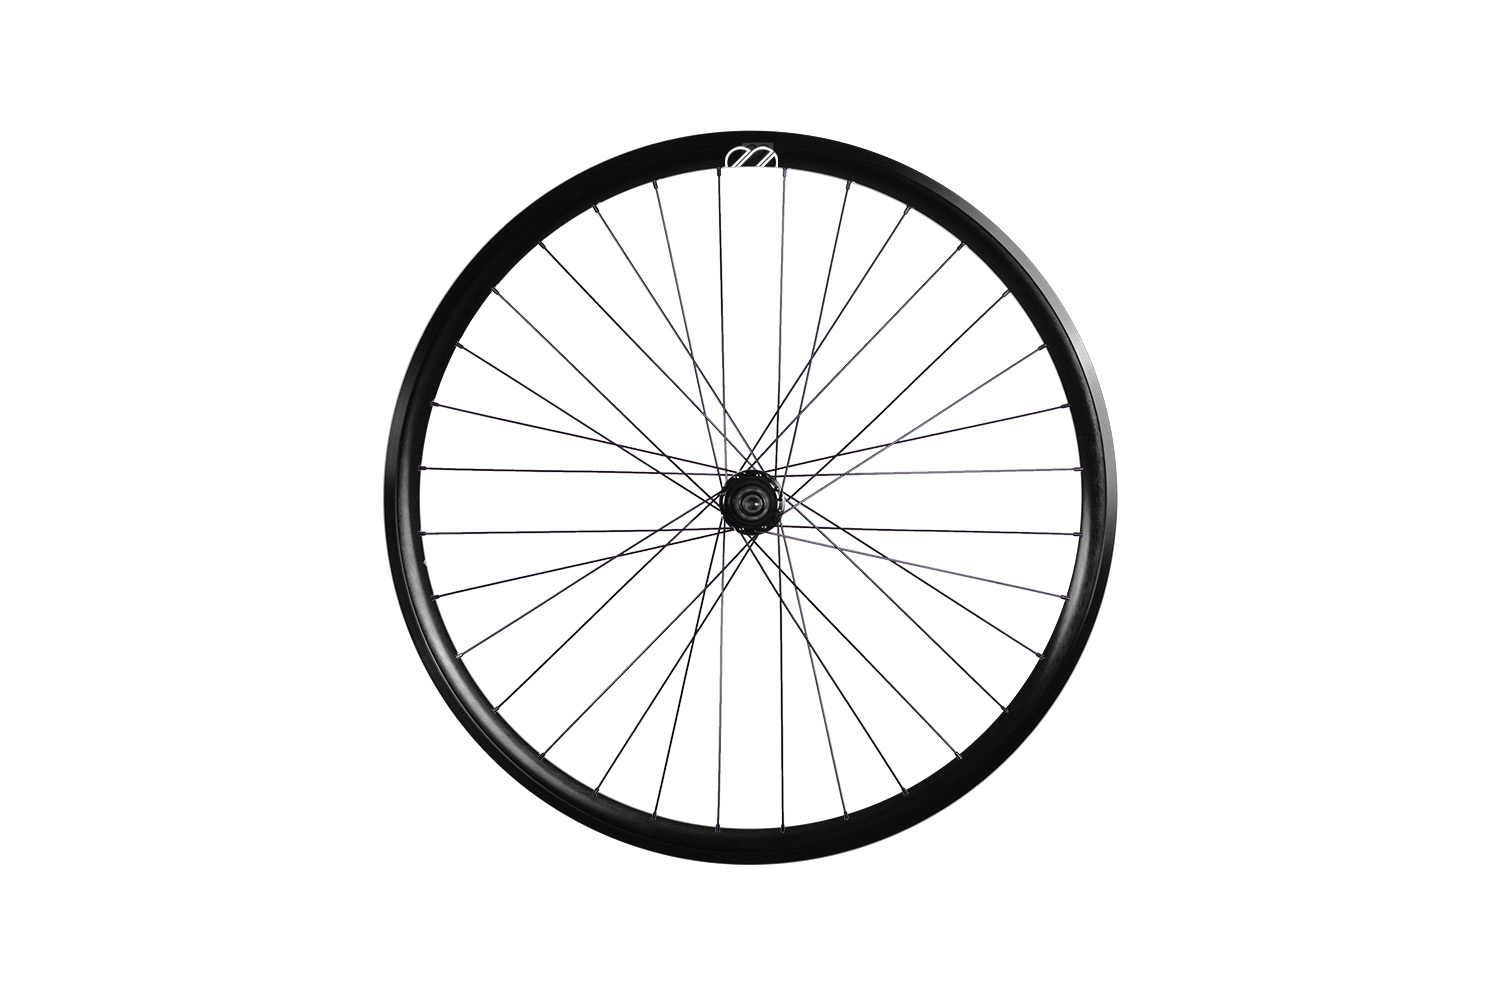 8bar-wheels-giga-black-rear-fixie-fixedgear